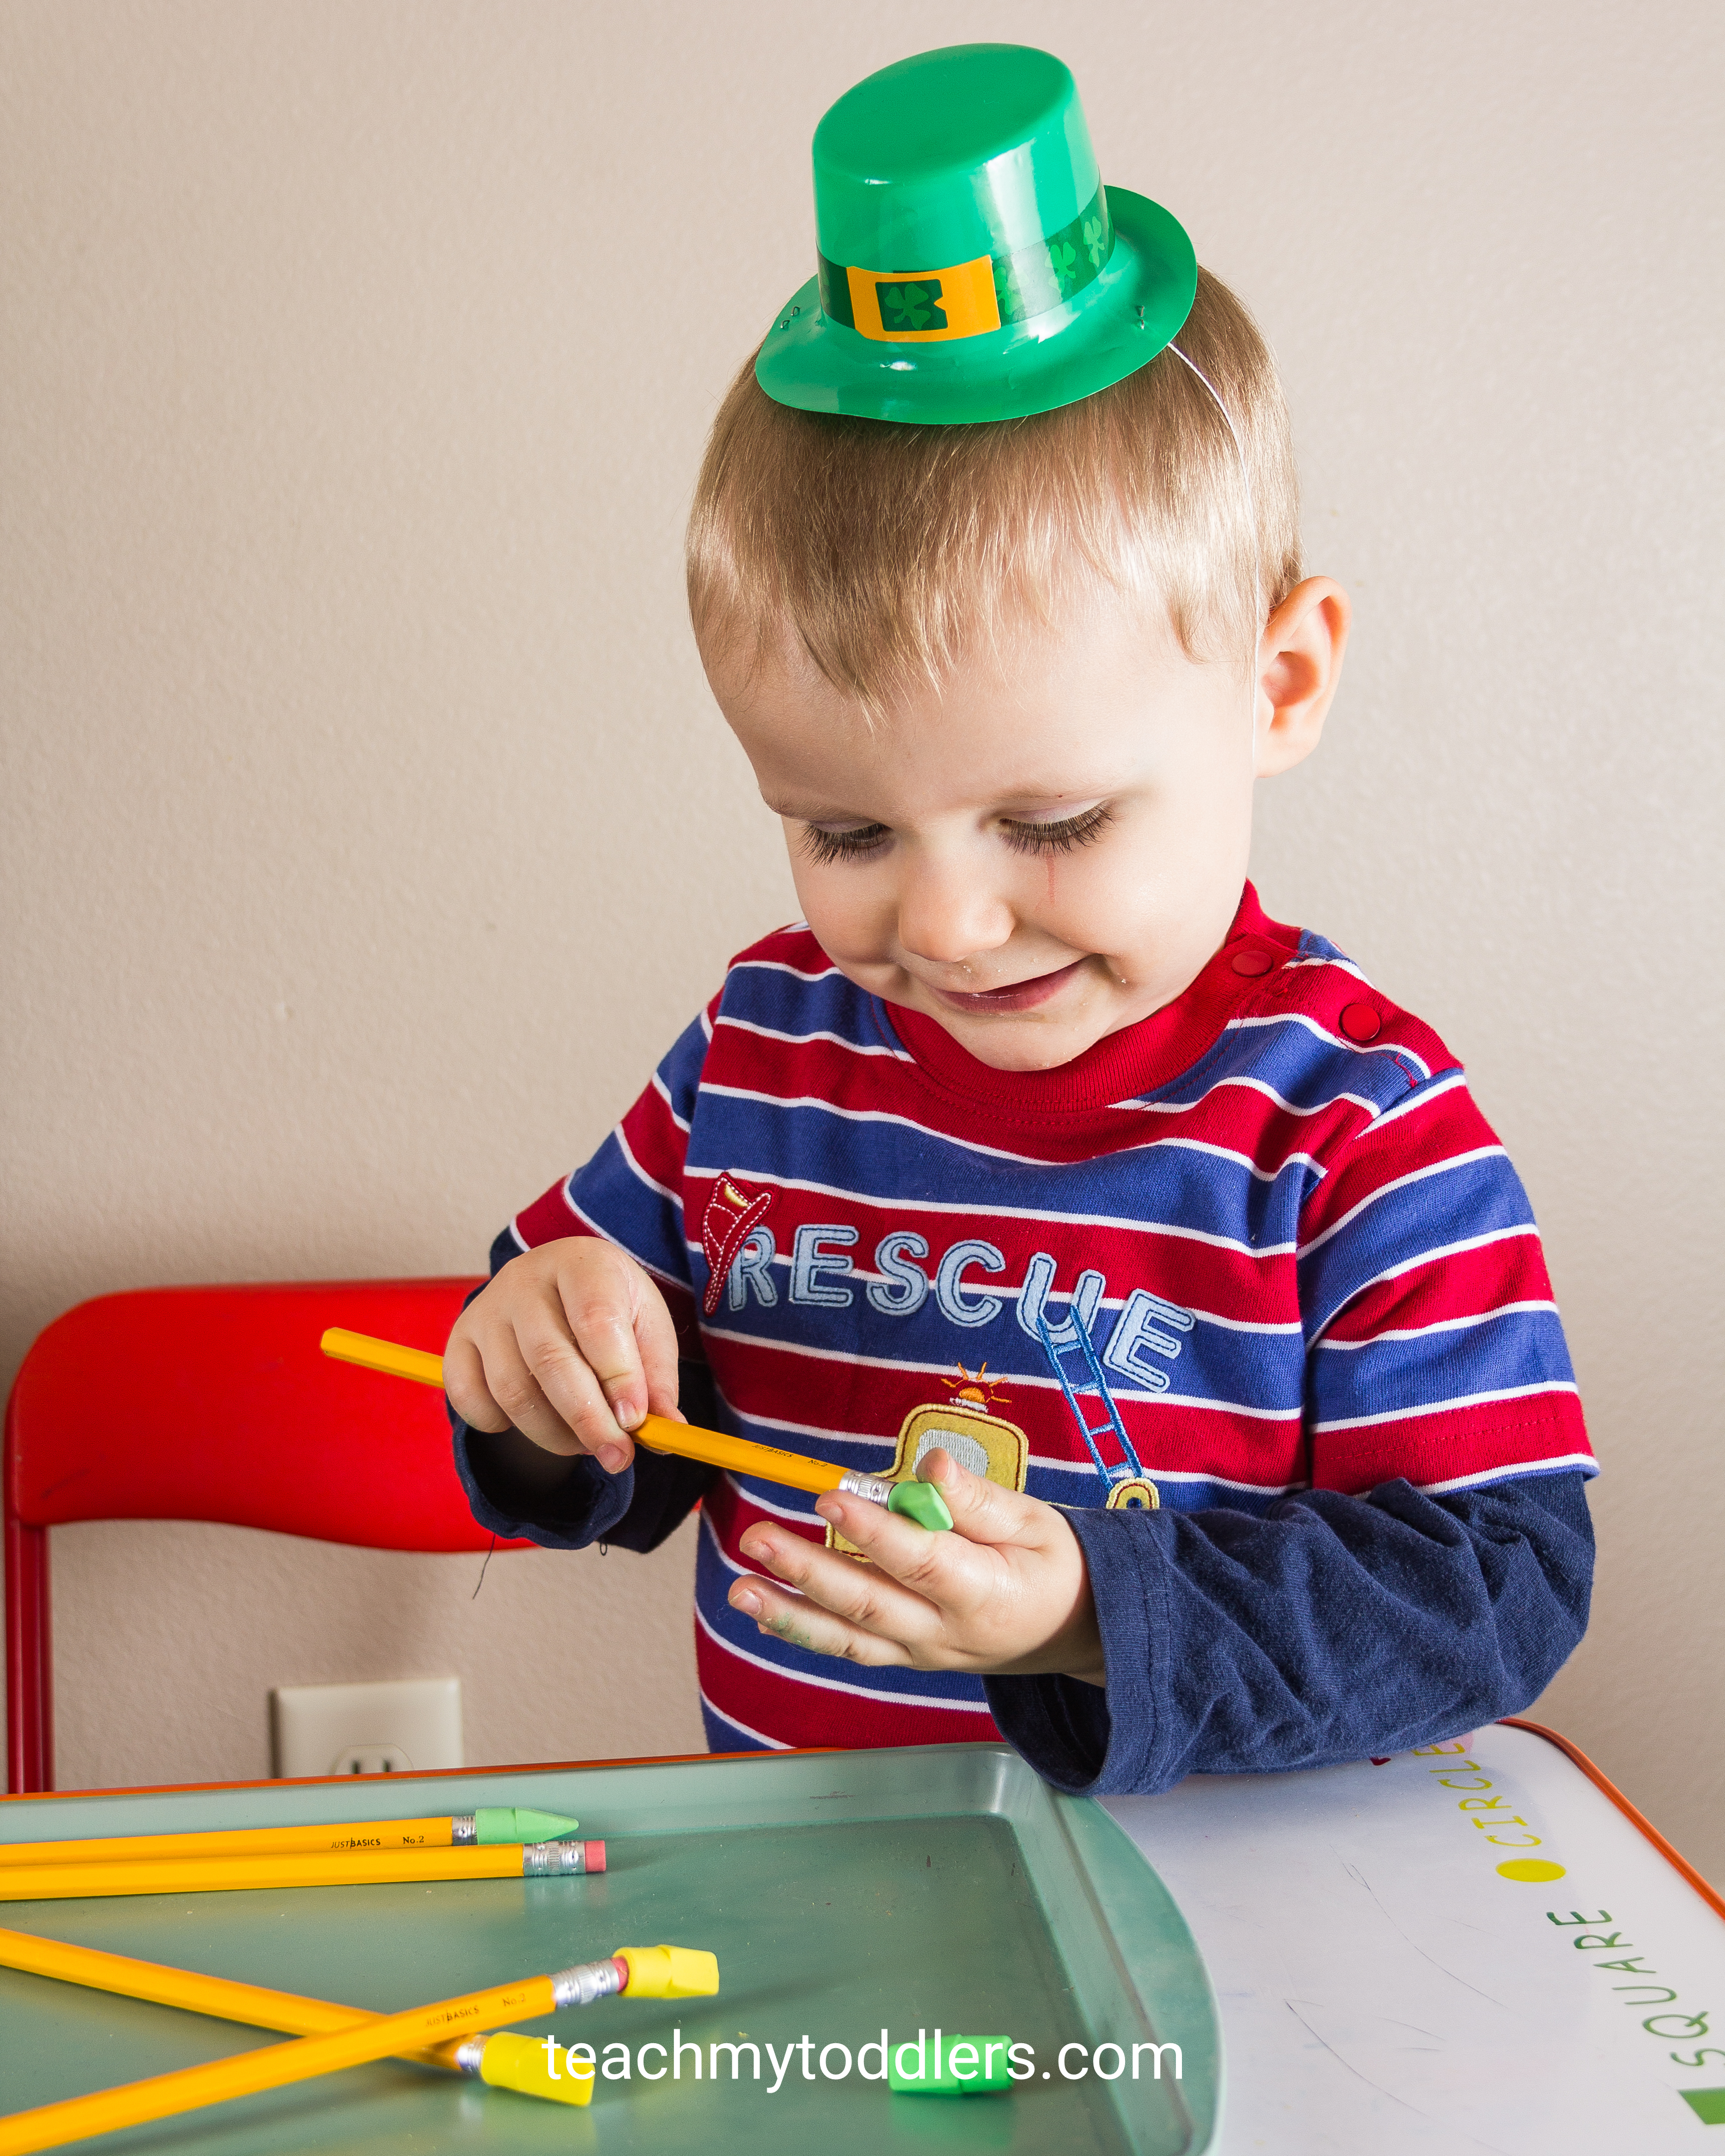 Teach your toddlers about St. Patrick's Day with these fun activities